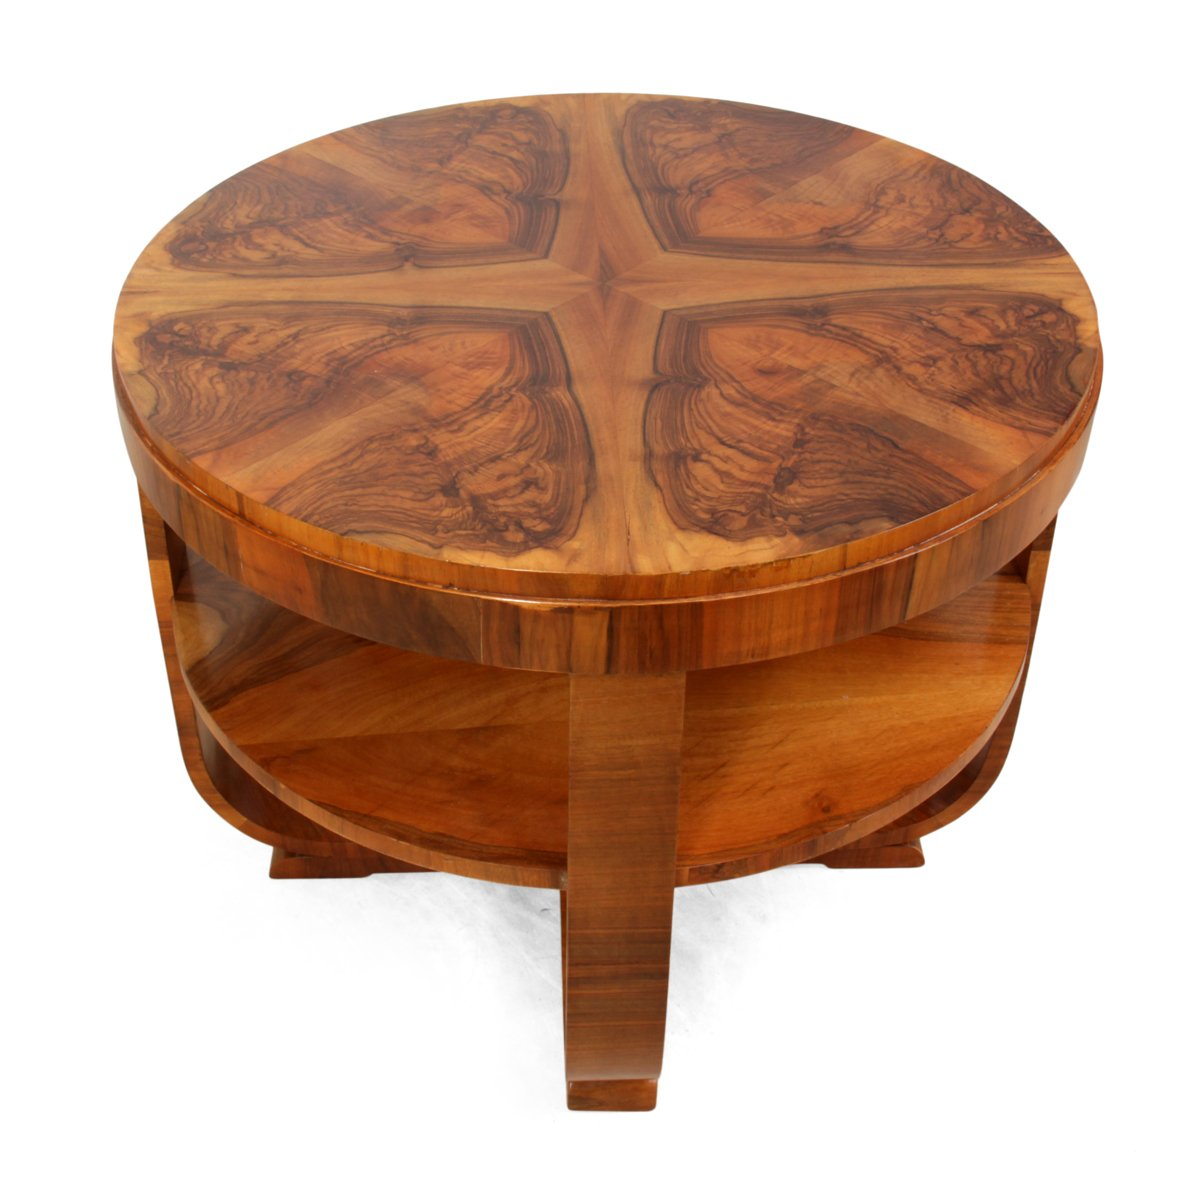 Art Deco Coffee Table In Walnut 1930s For Sale At Pamono